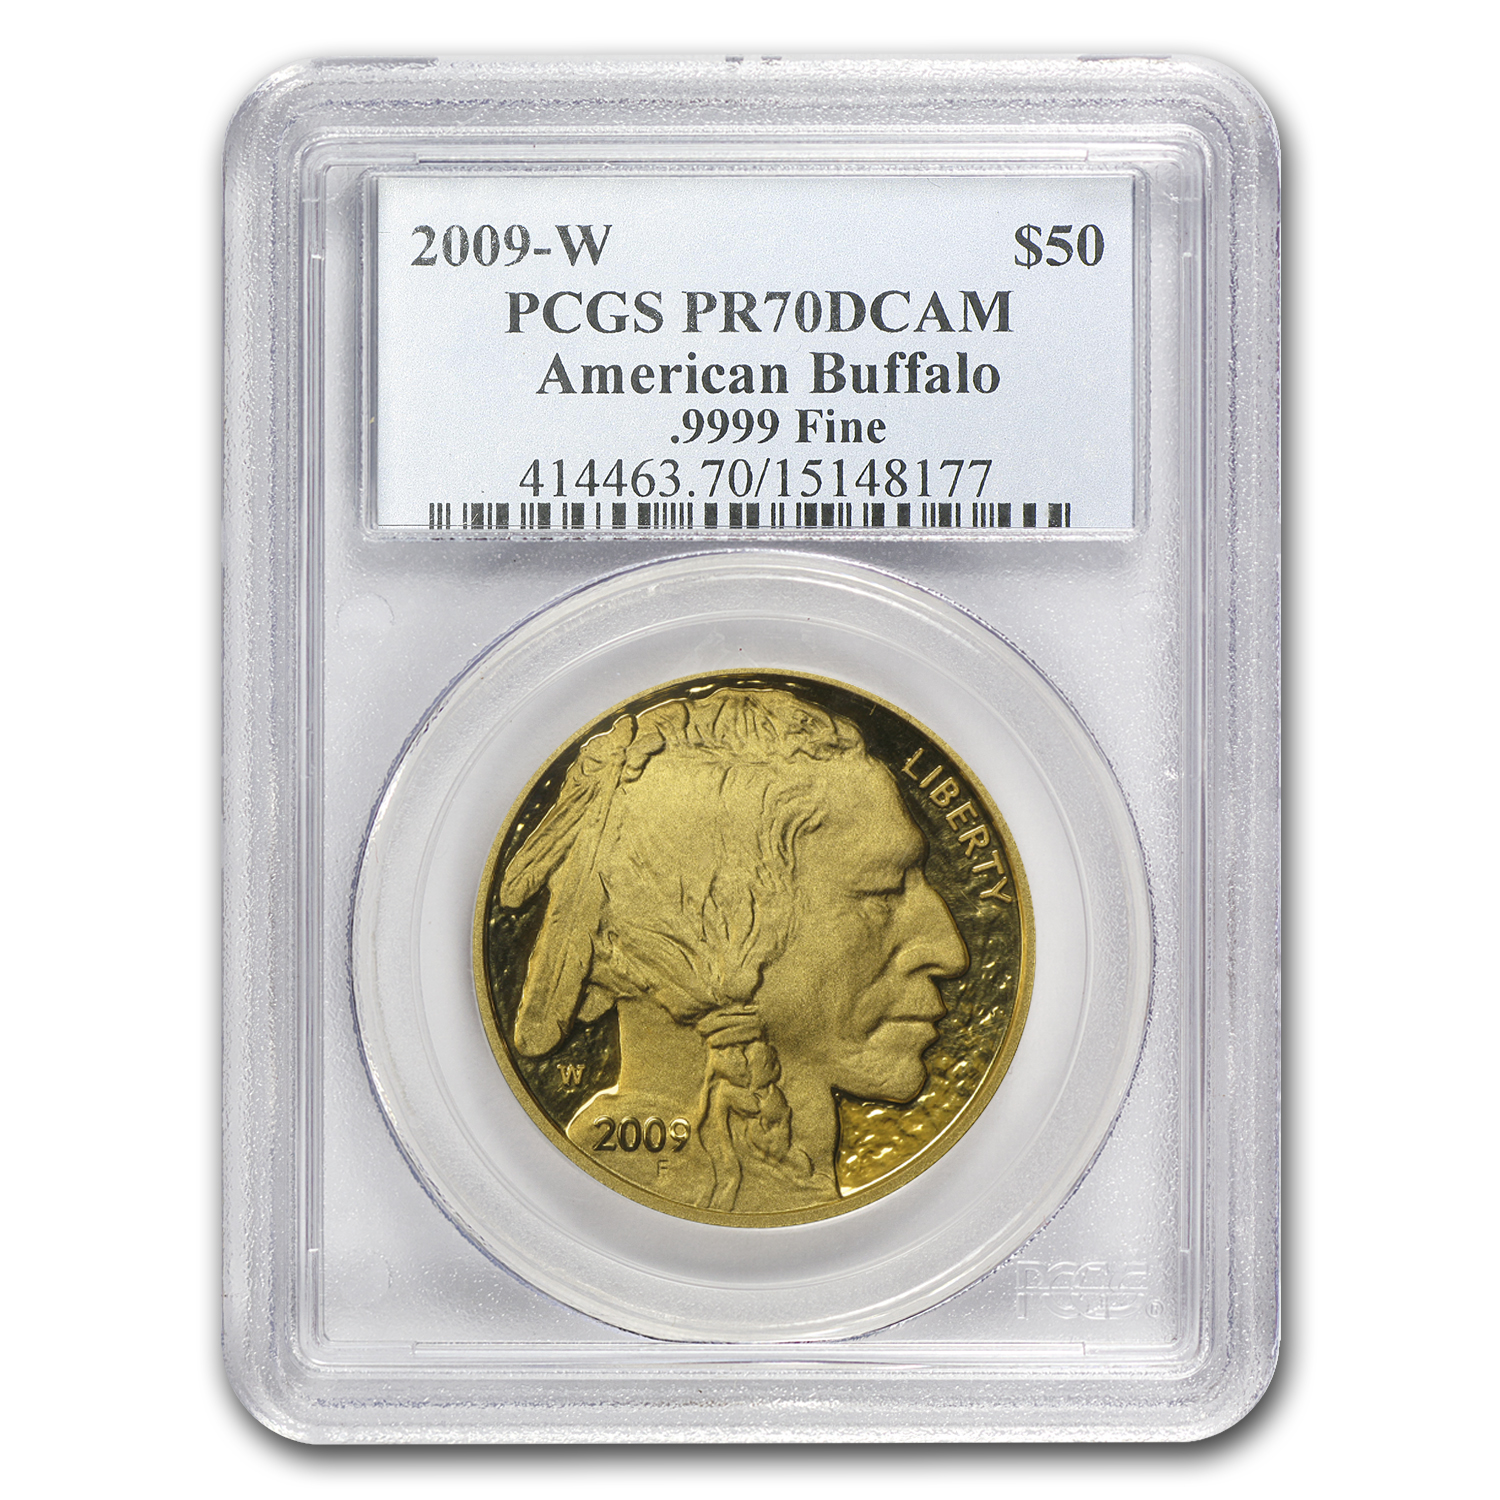 2009-W 1 oz Proof Gold Buffalo PR-70 PCGS